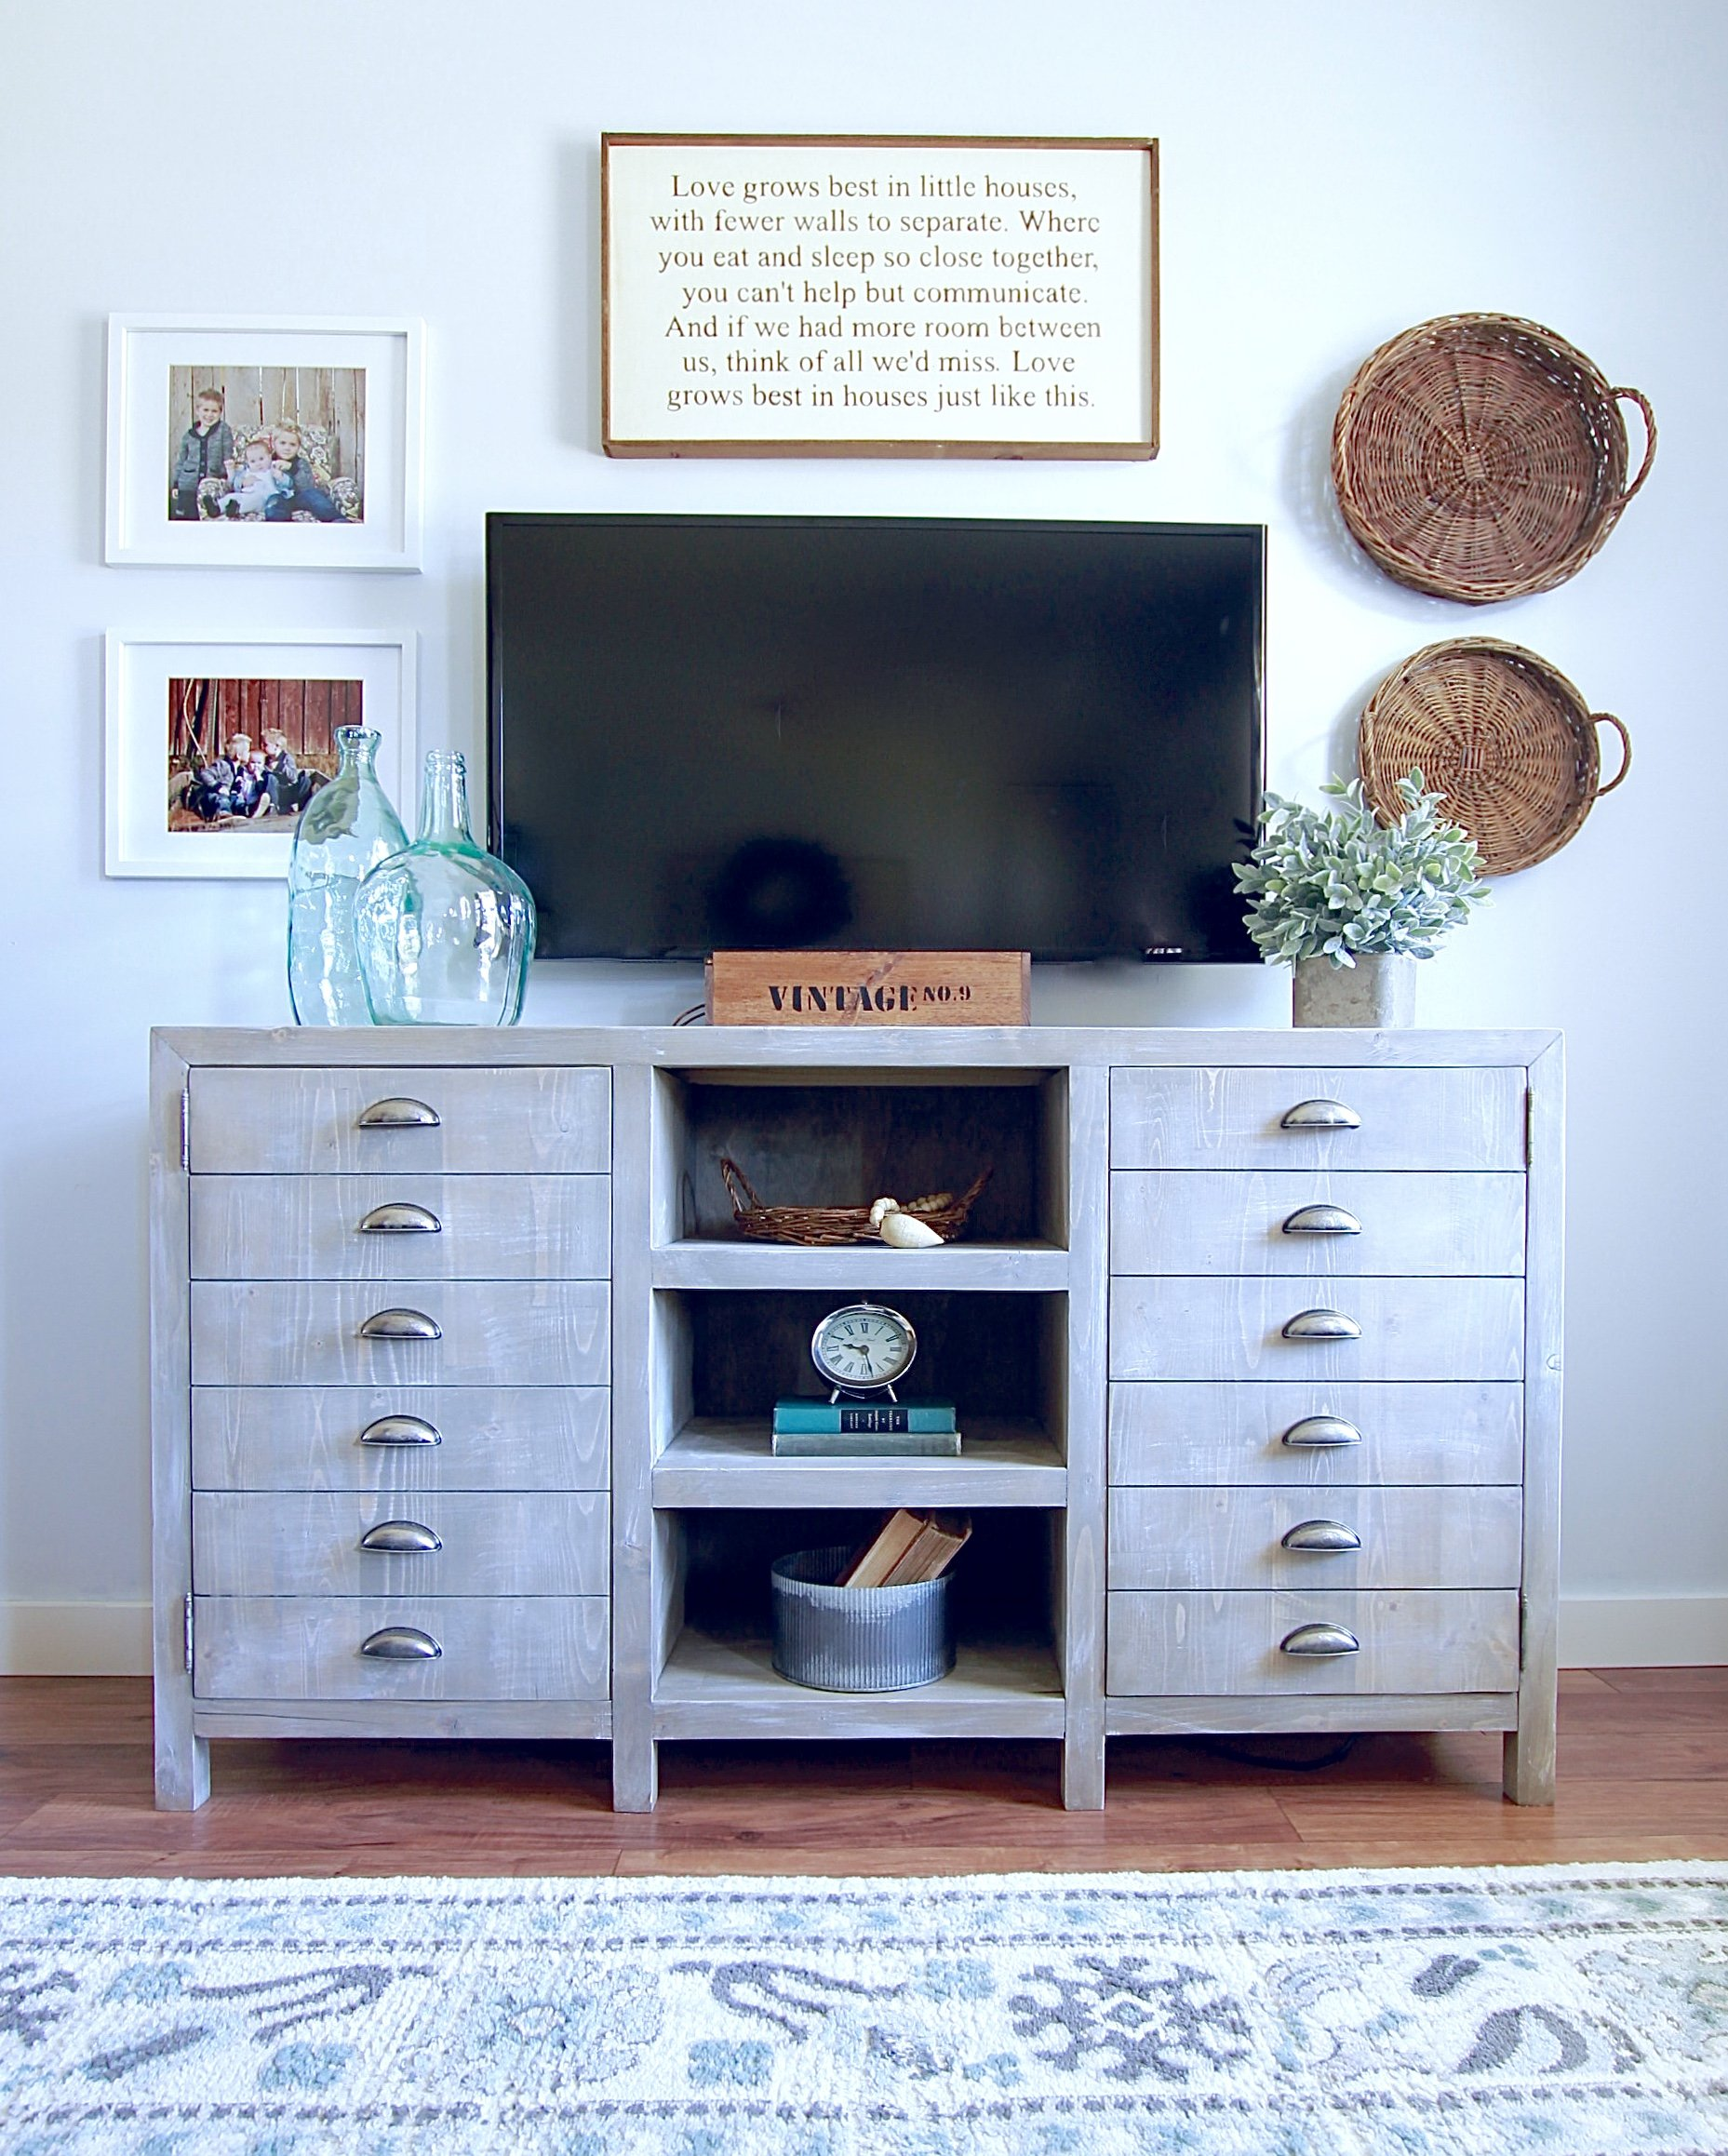 Matching Restoration Hardware Inspired Consoles, Printmakers Console, Media Stand, TV Stand, DIY Rustic TV Stand, DIY Rustic Dining Room Sideboard Ana White www.whitepicketfarmhouse.com